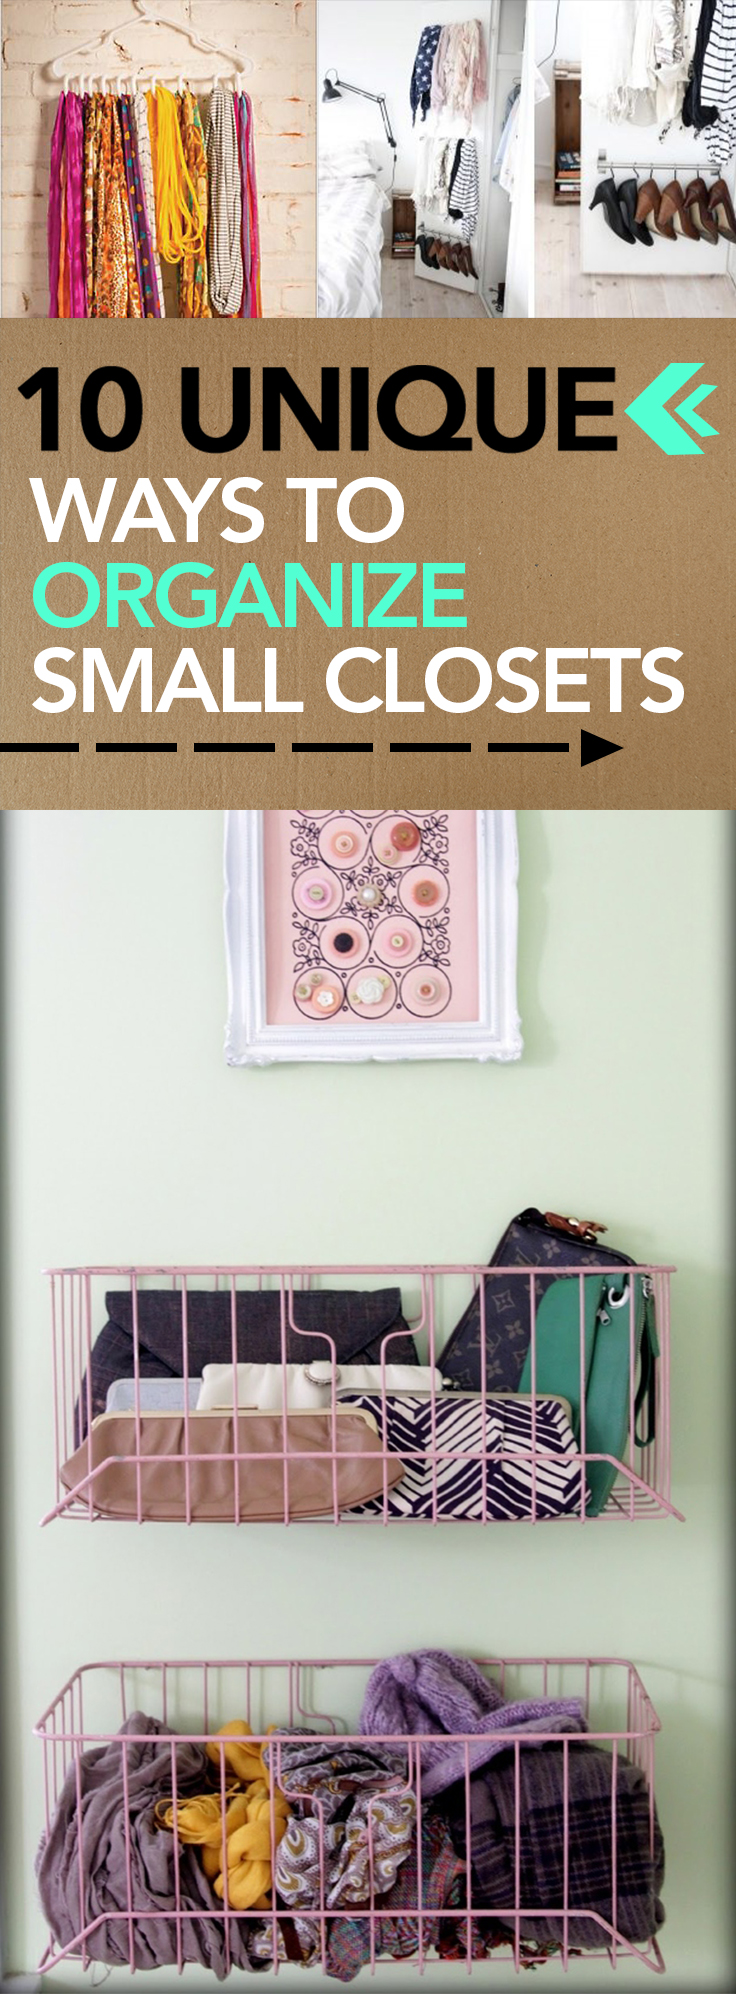 10 Unique Ways To Organize Small Closets Page 3 Of 11